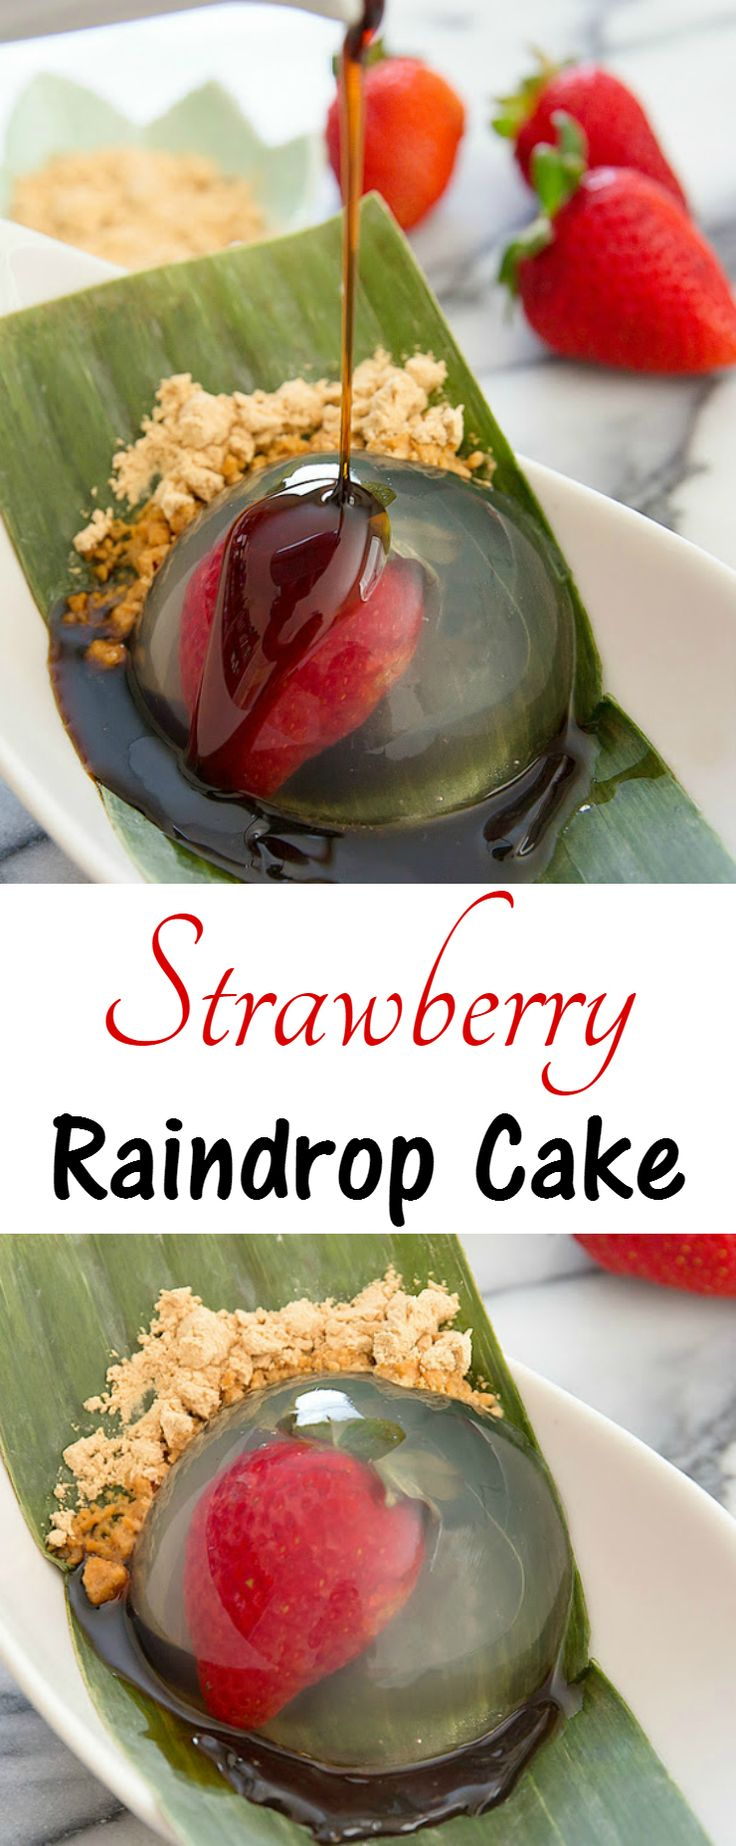 Strawberry Raindrop Cake. This low calorie dessert is light and refreshing!